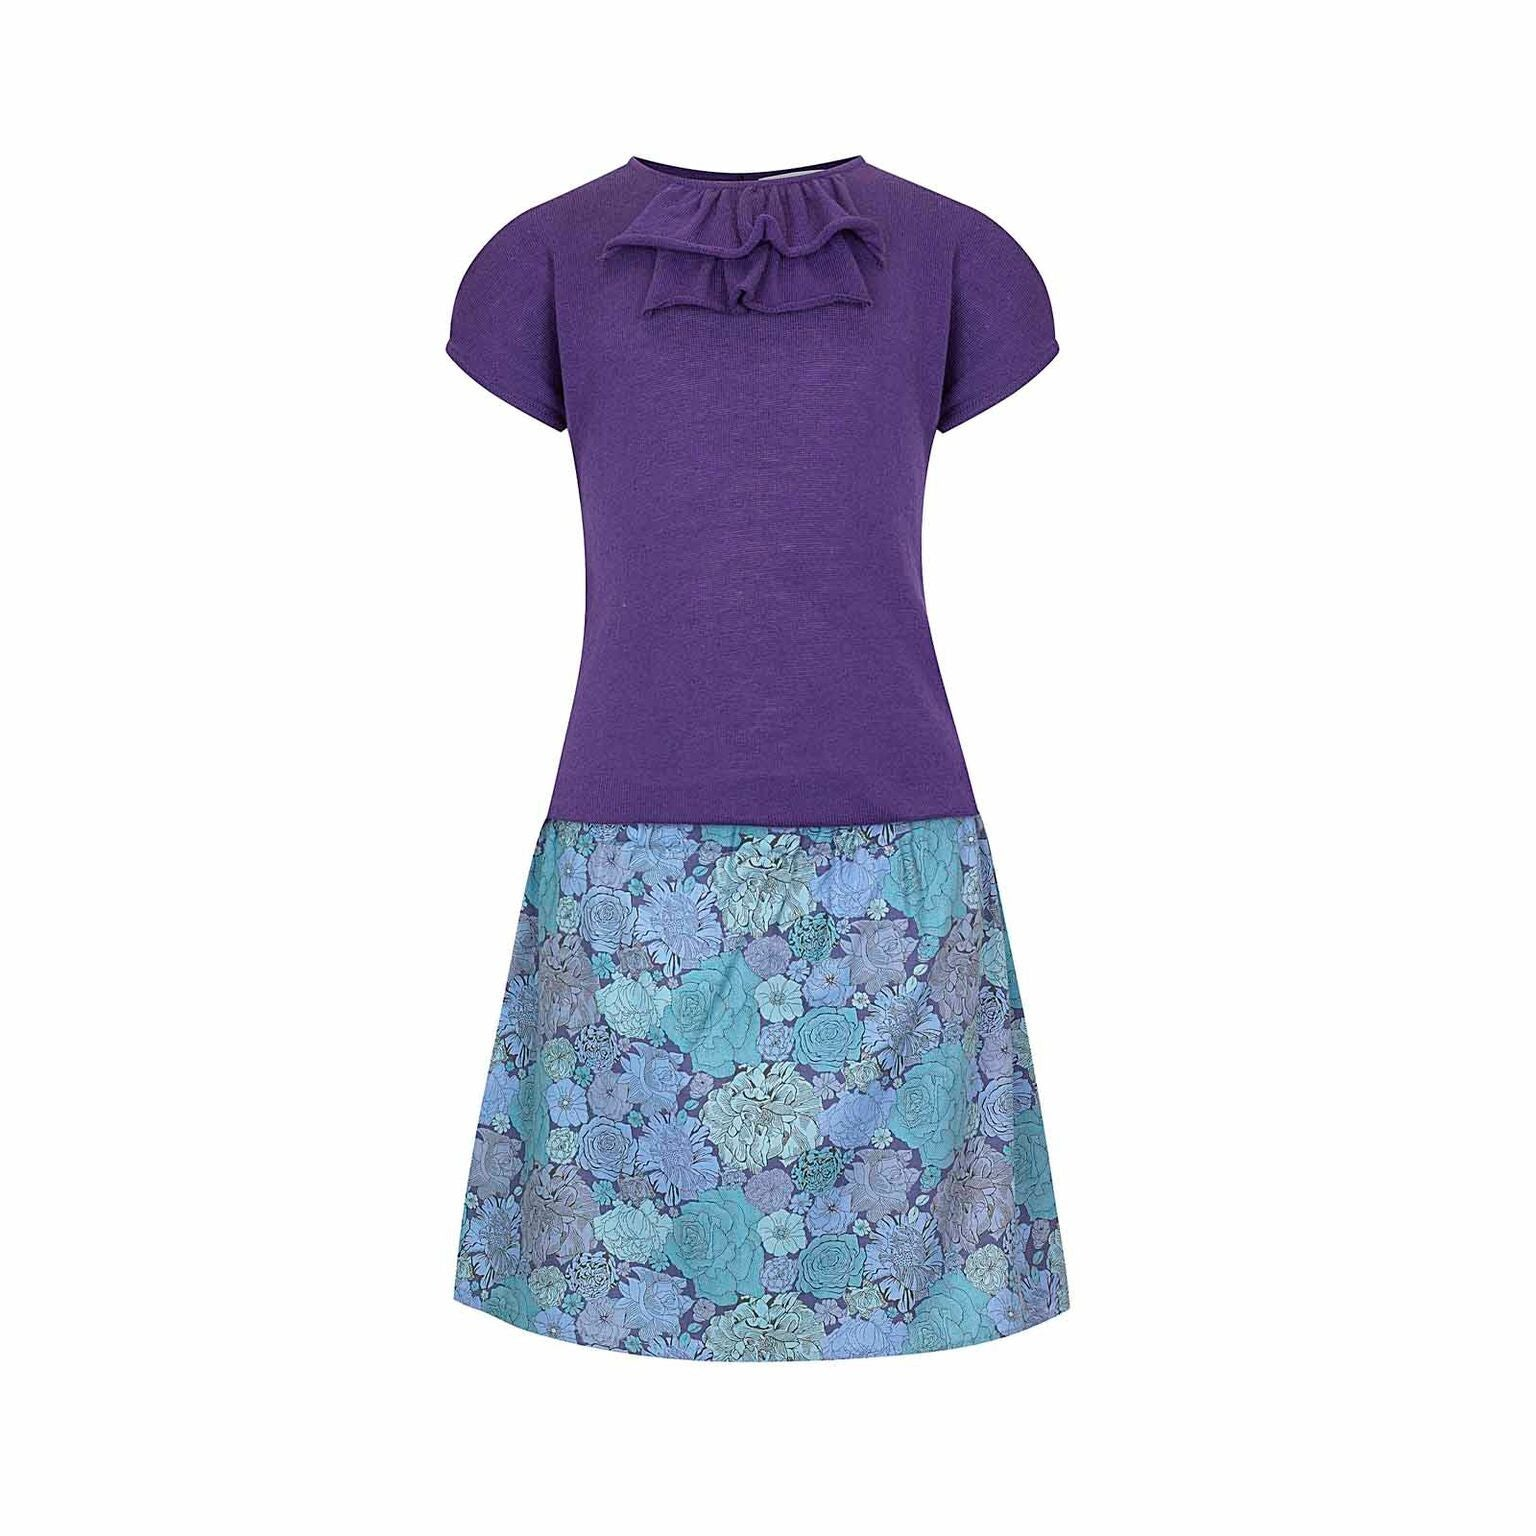 202260633c64 Lucy - Girls Summer Dress with Ruffles - Purple